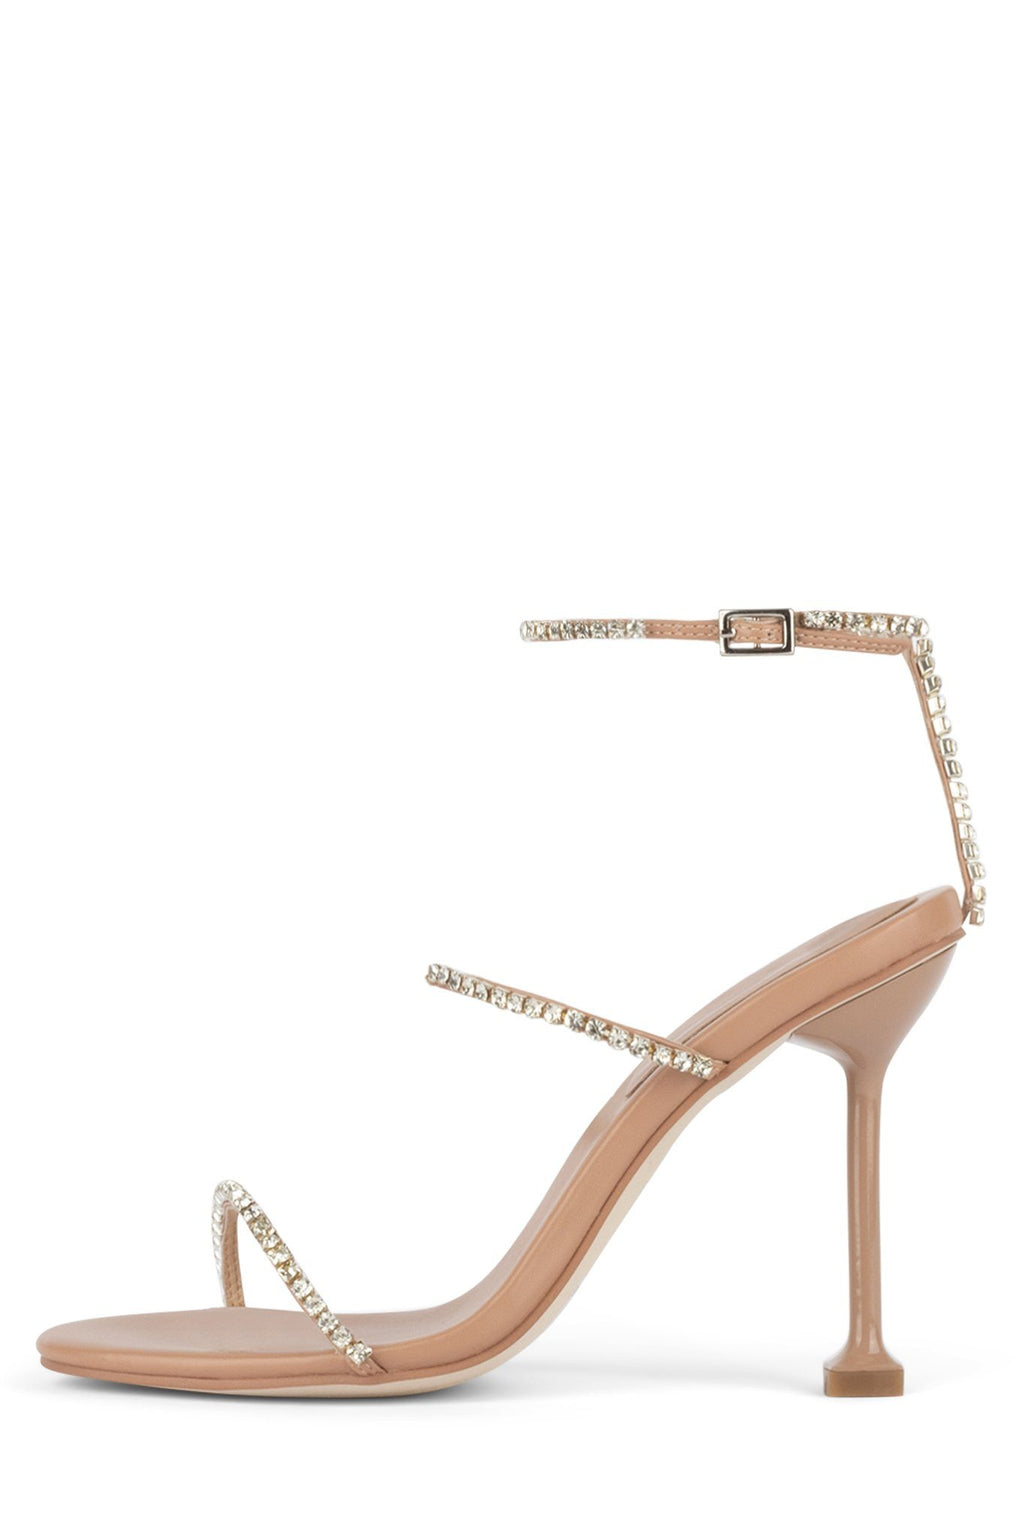 DEMONIC Heeled Sandal YYH Nude Clear 6